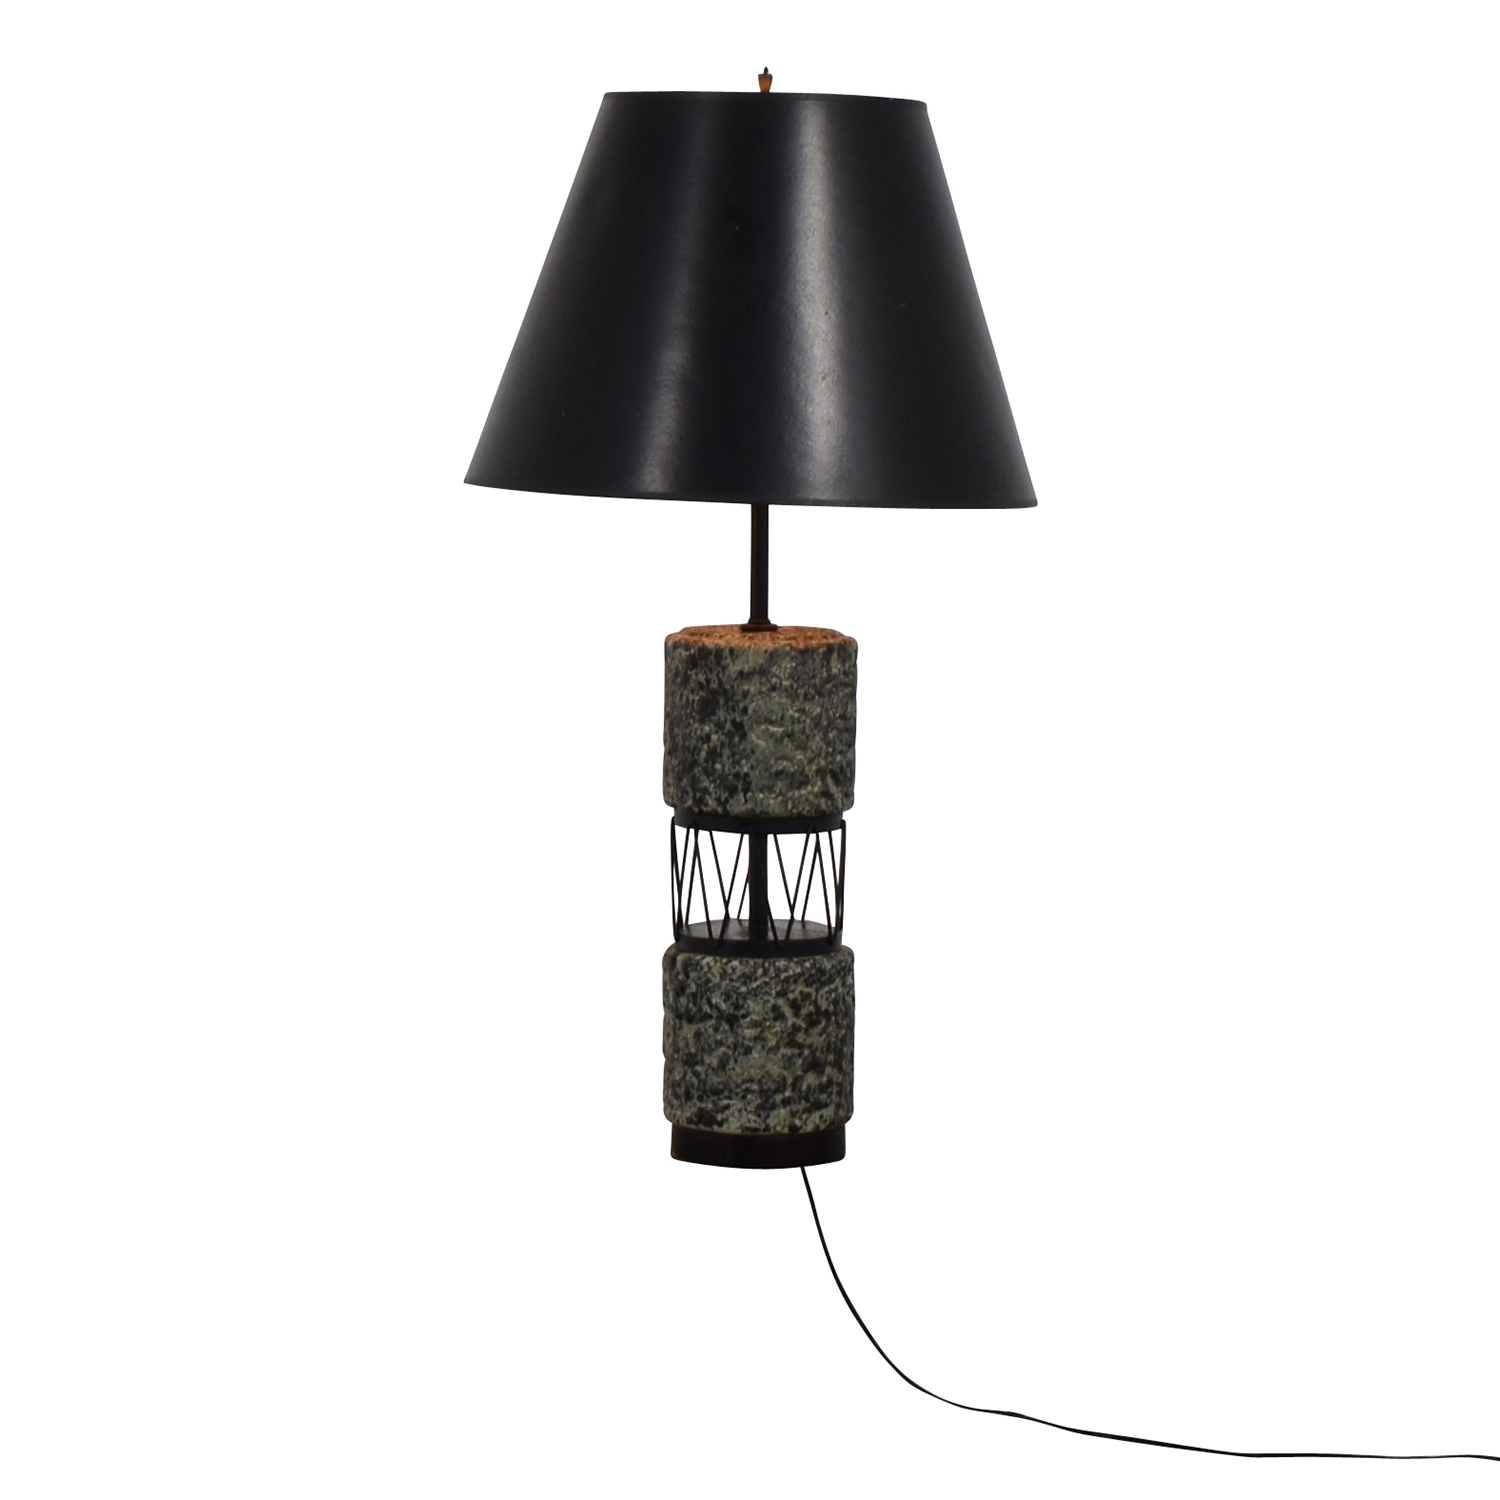 50's Black and White Table Lamp for sale